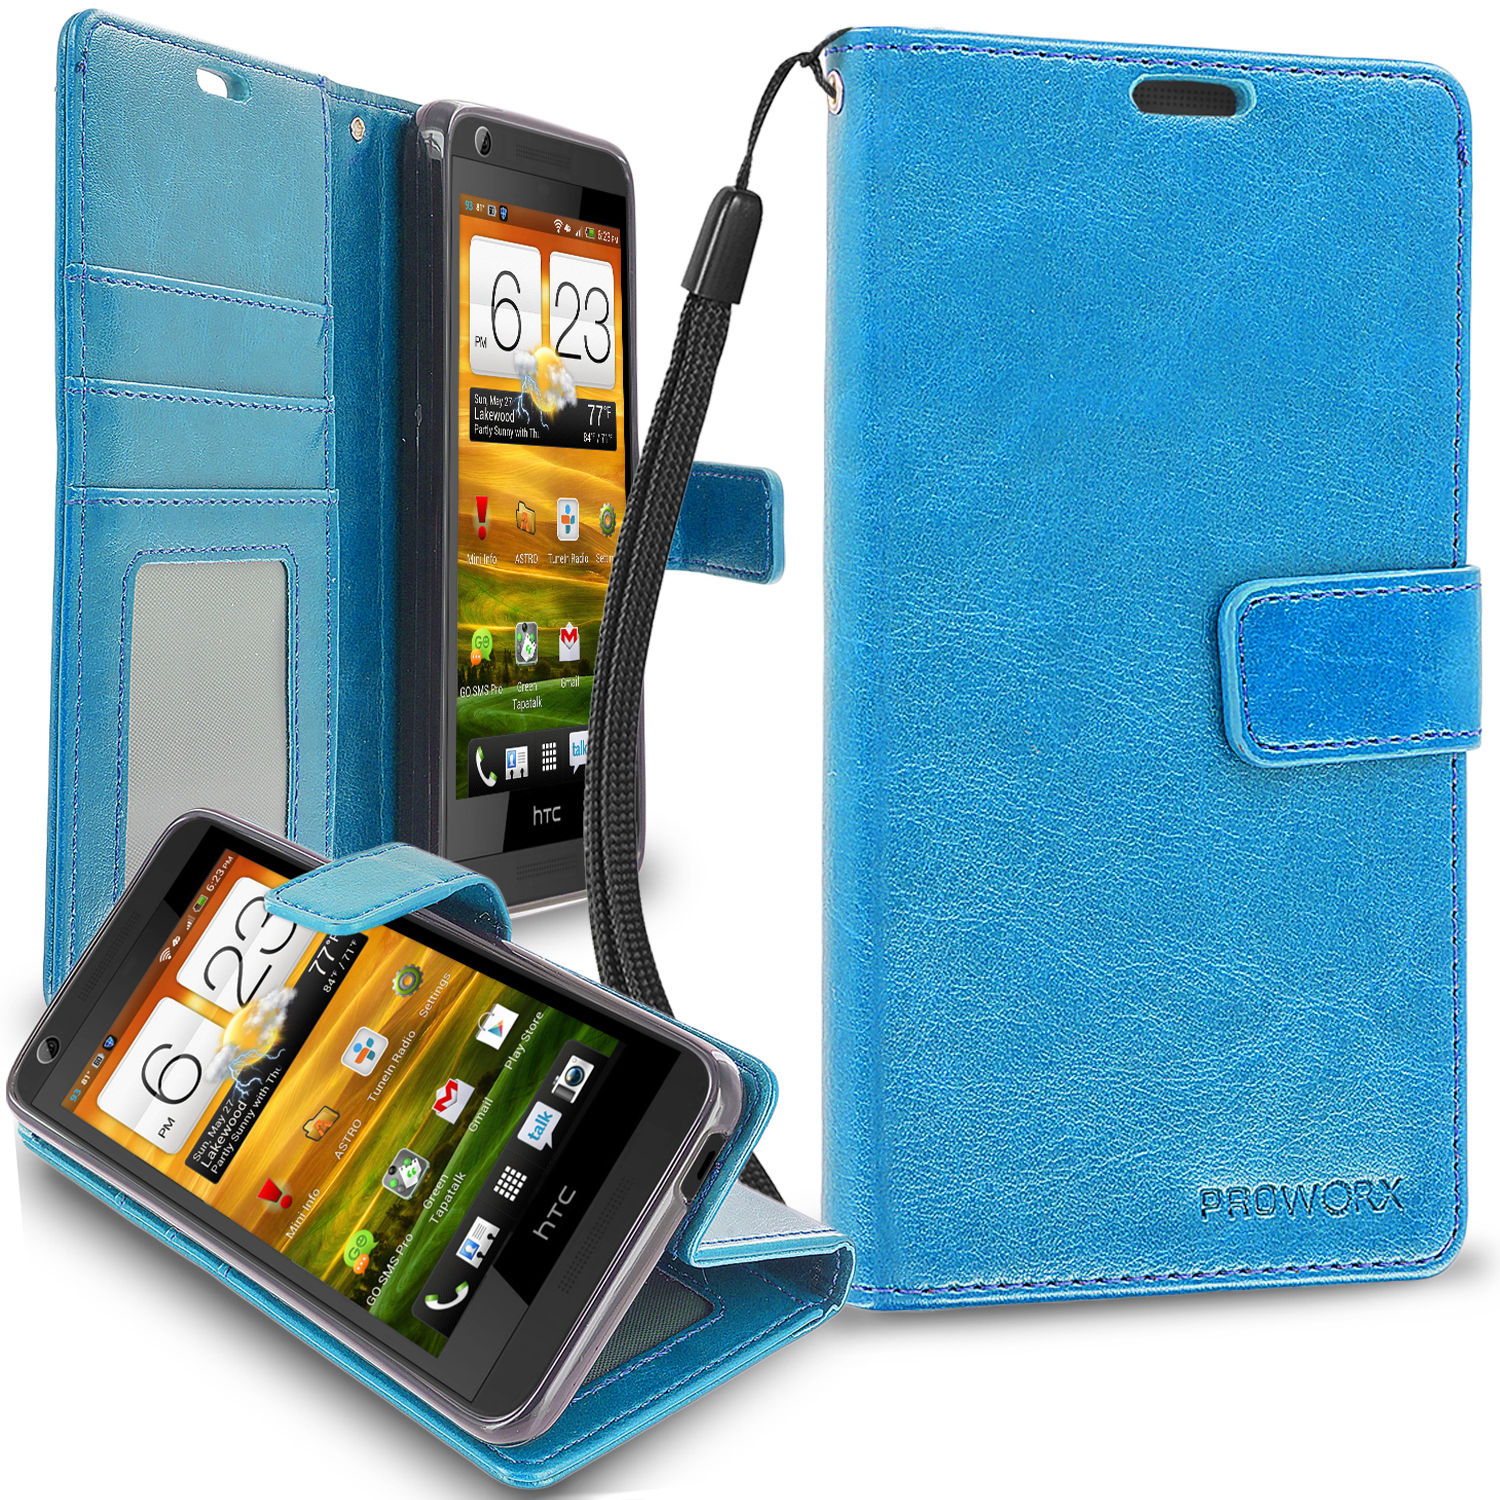 HTC Desire 626 / 626s Baby Blue ProWorx Wallet Case Luxury PU Leather Case Cover With Card Slots & Stand